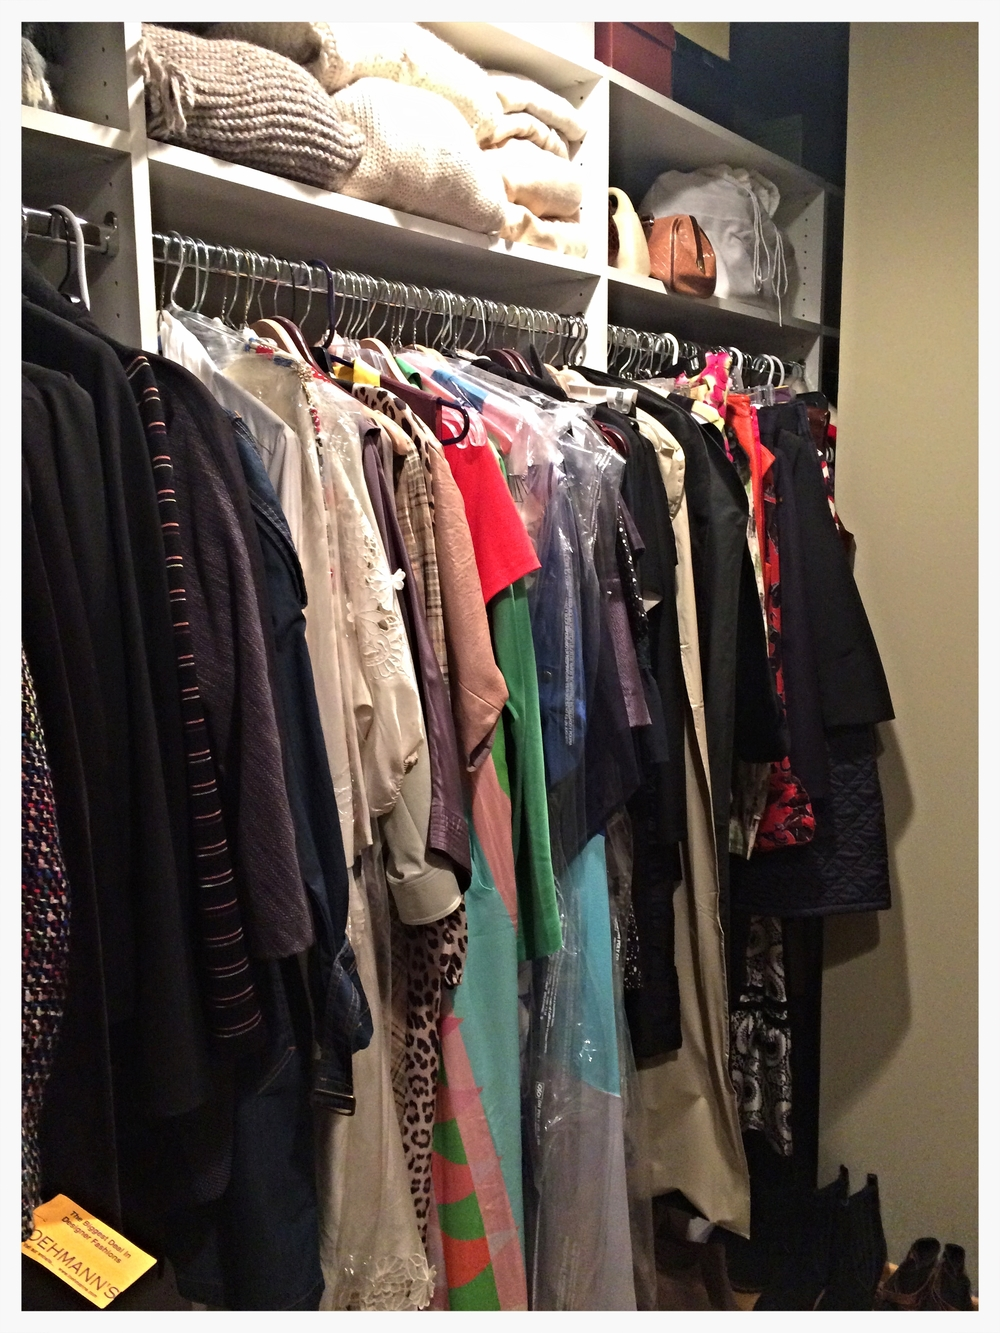 CLOSET EDIT: AFTER